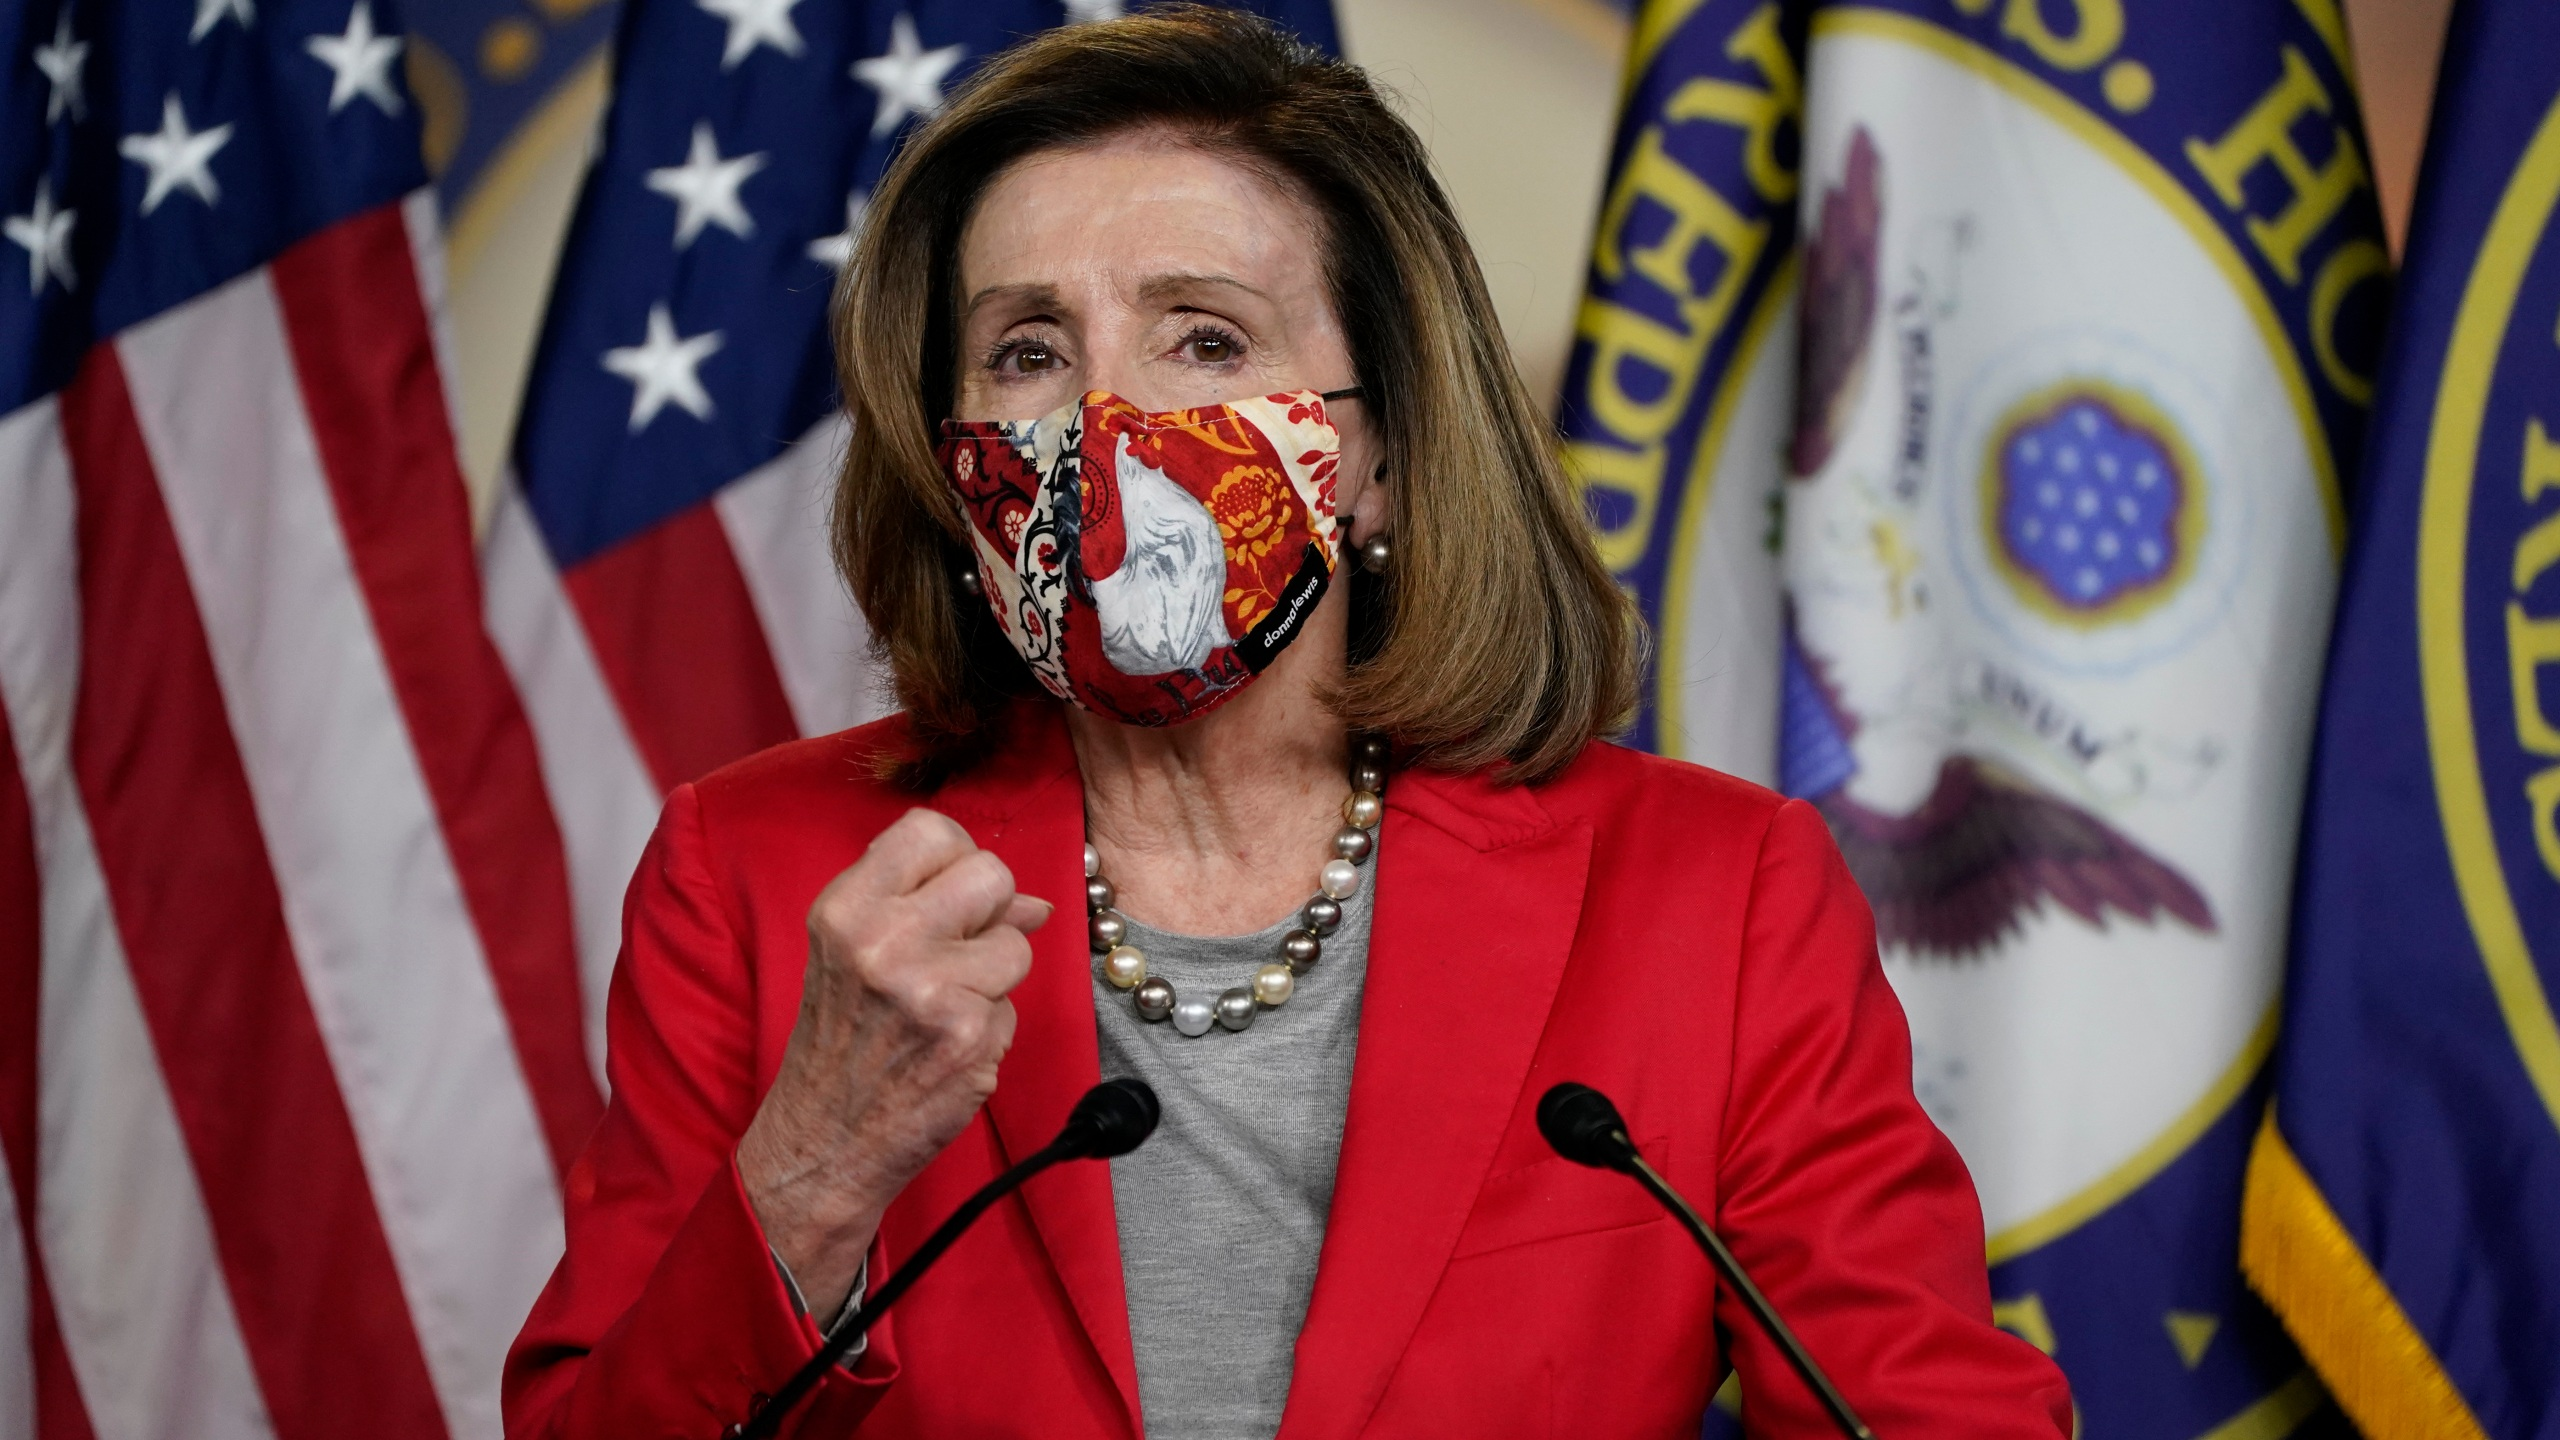 Nancy Pelosi likely to be reelected as House speaker, but pandemic